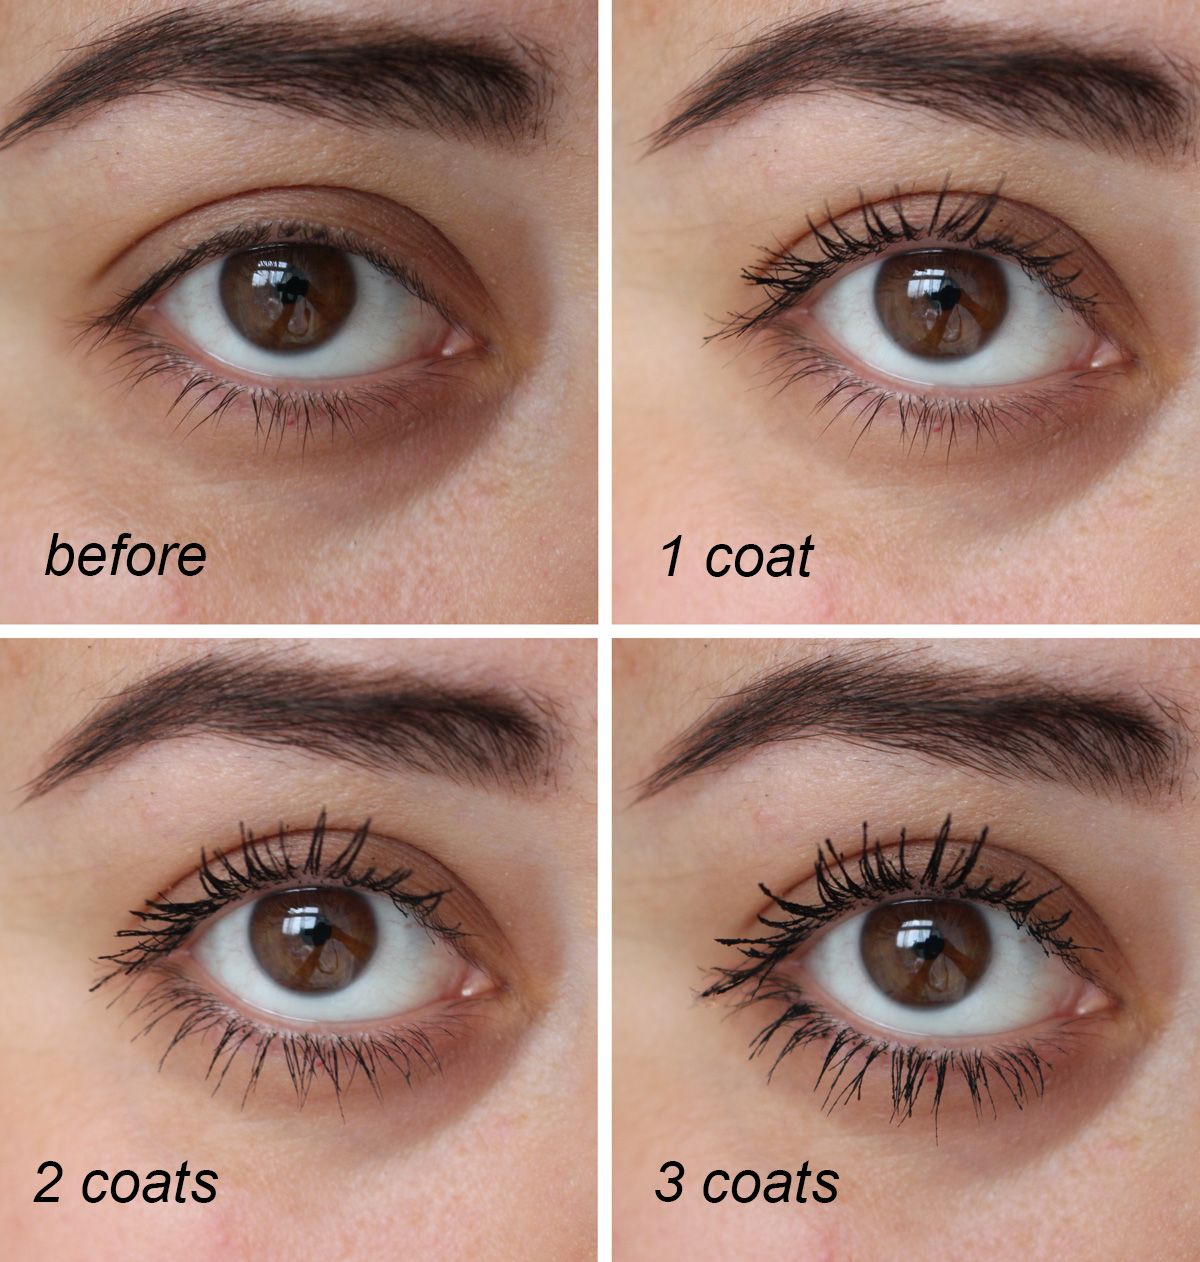 Lancôme Monsieur Big Mascara before and after photo